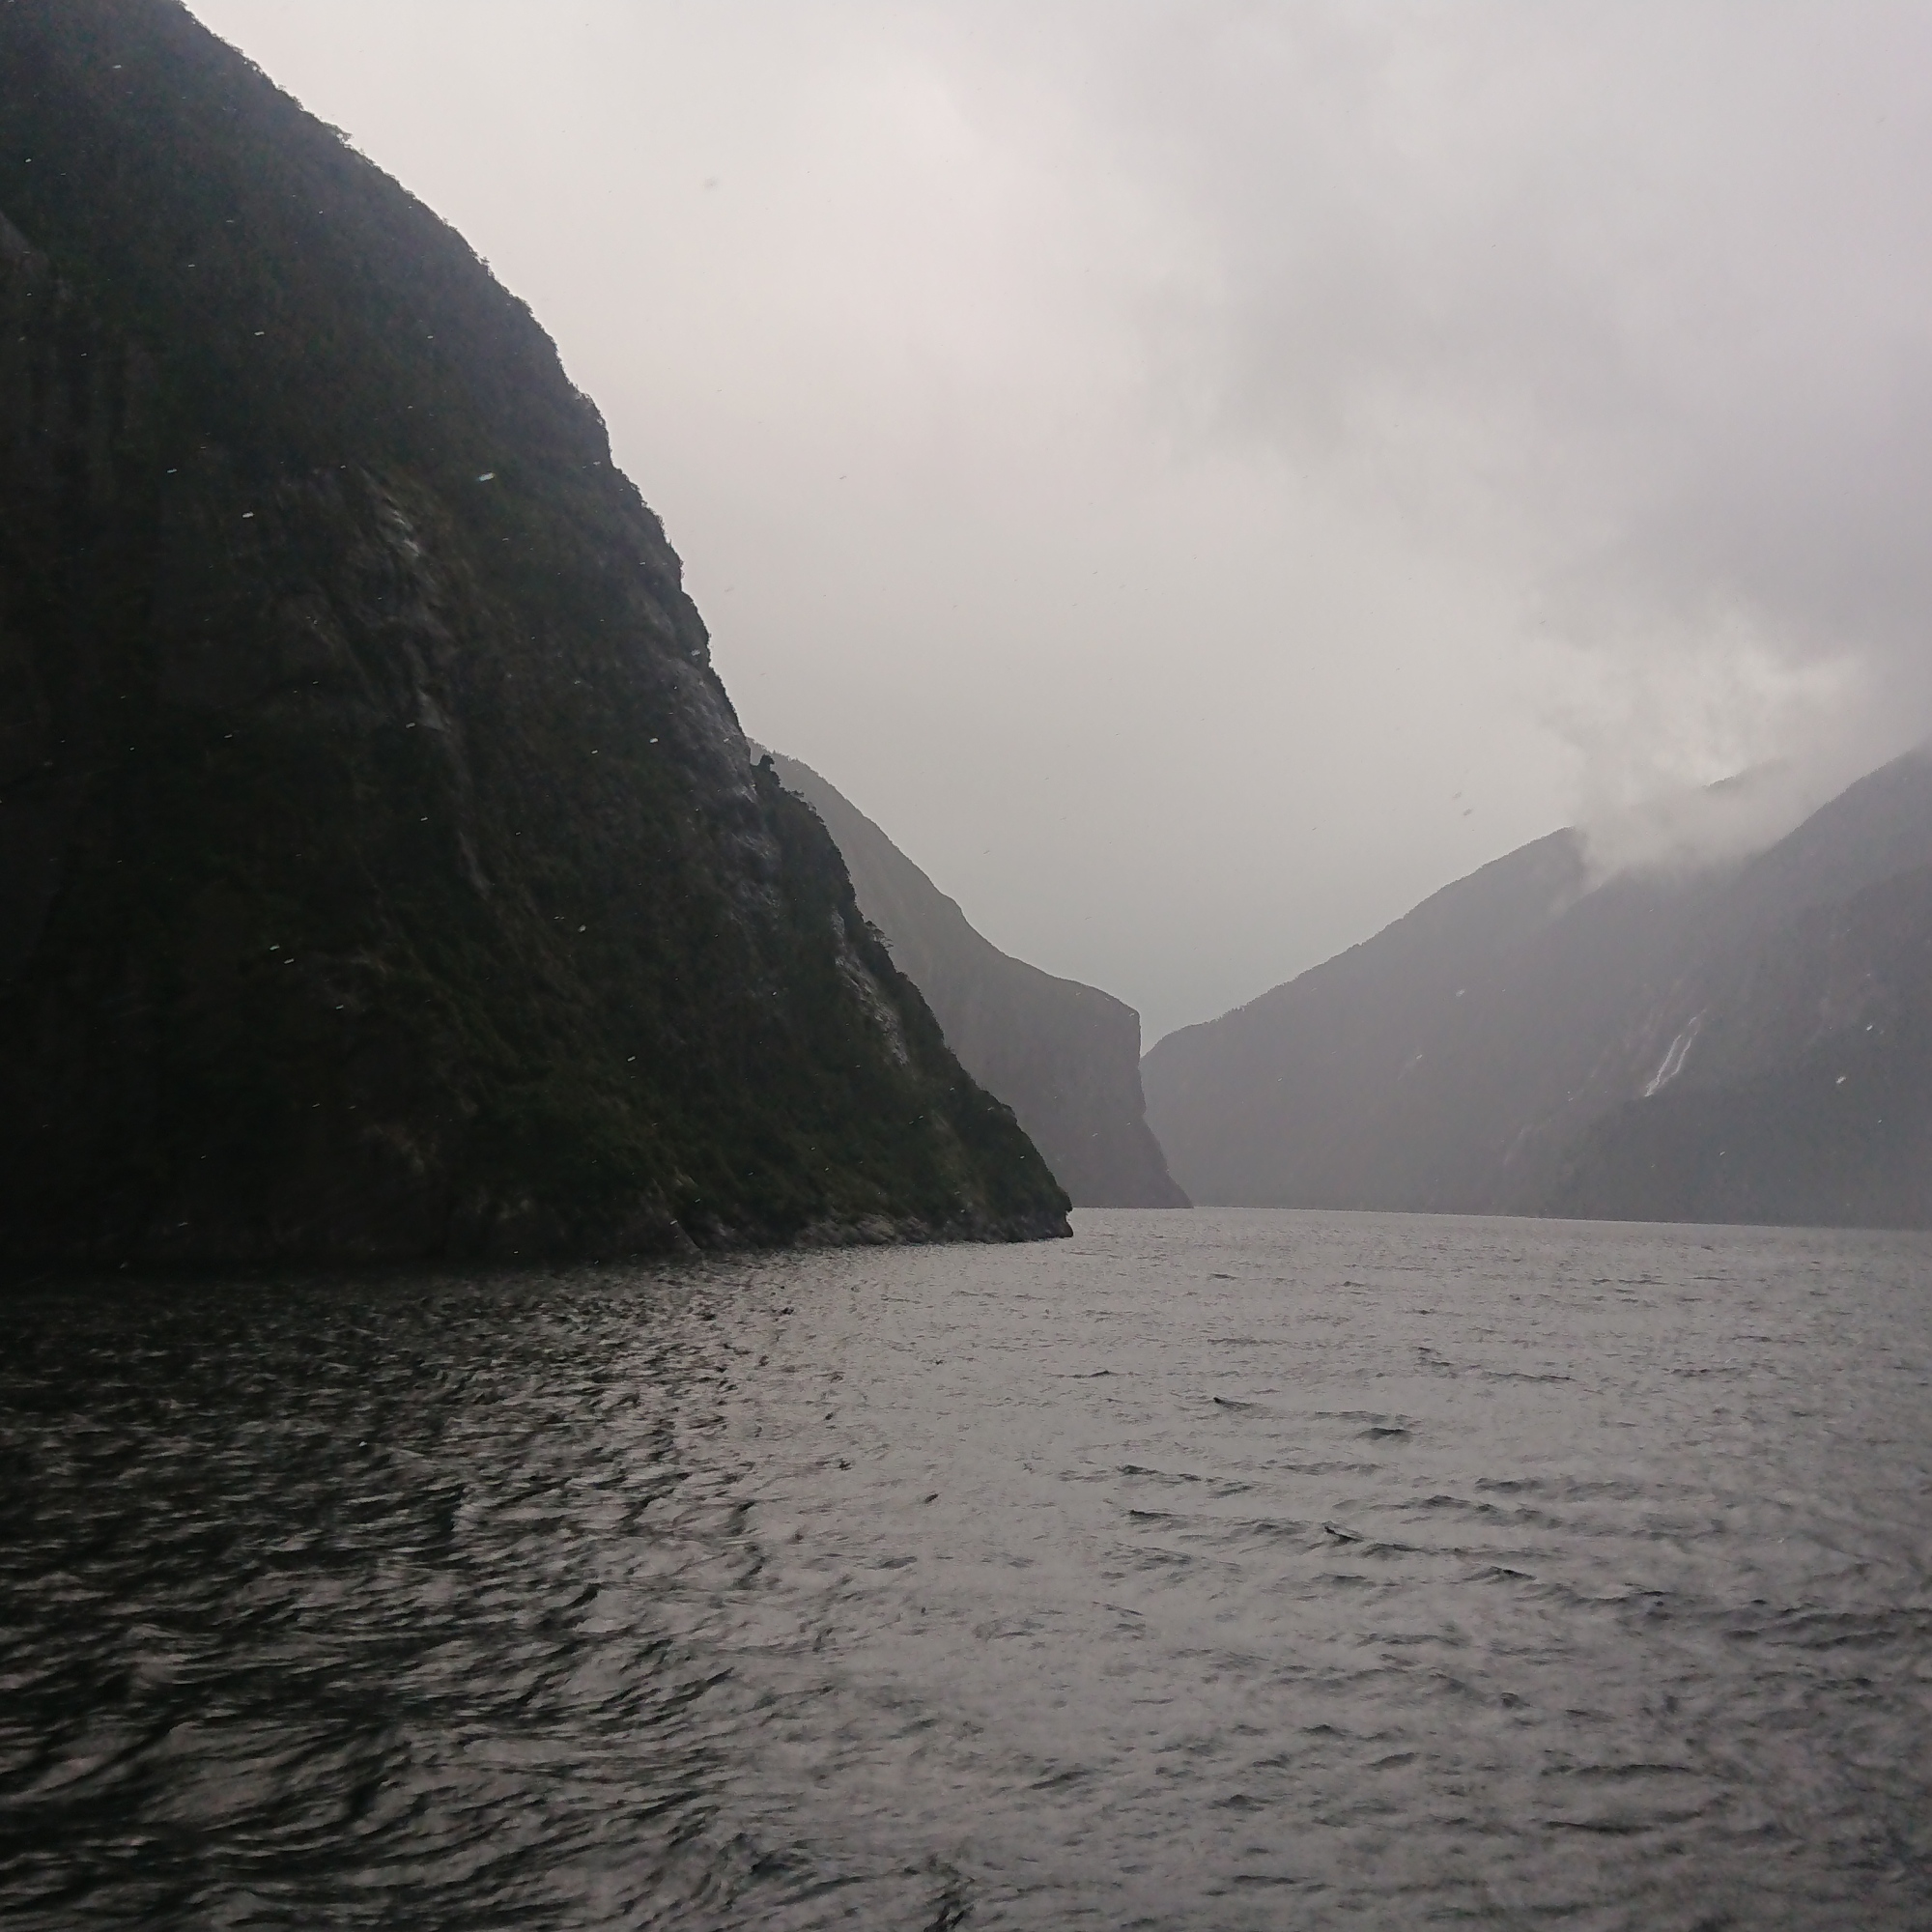 Moody views from the clouds and mist in Milford Sound